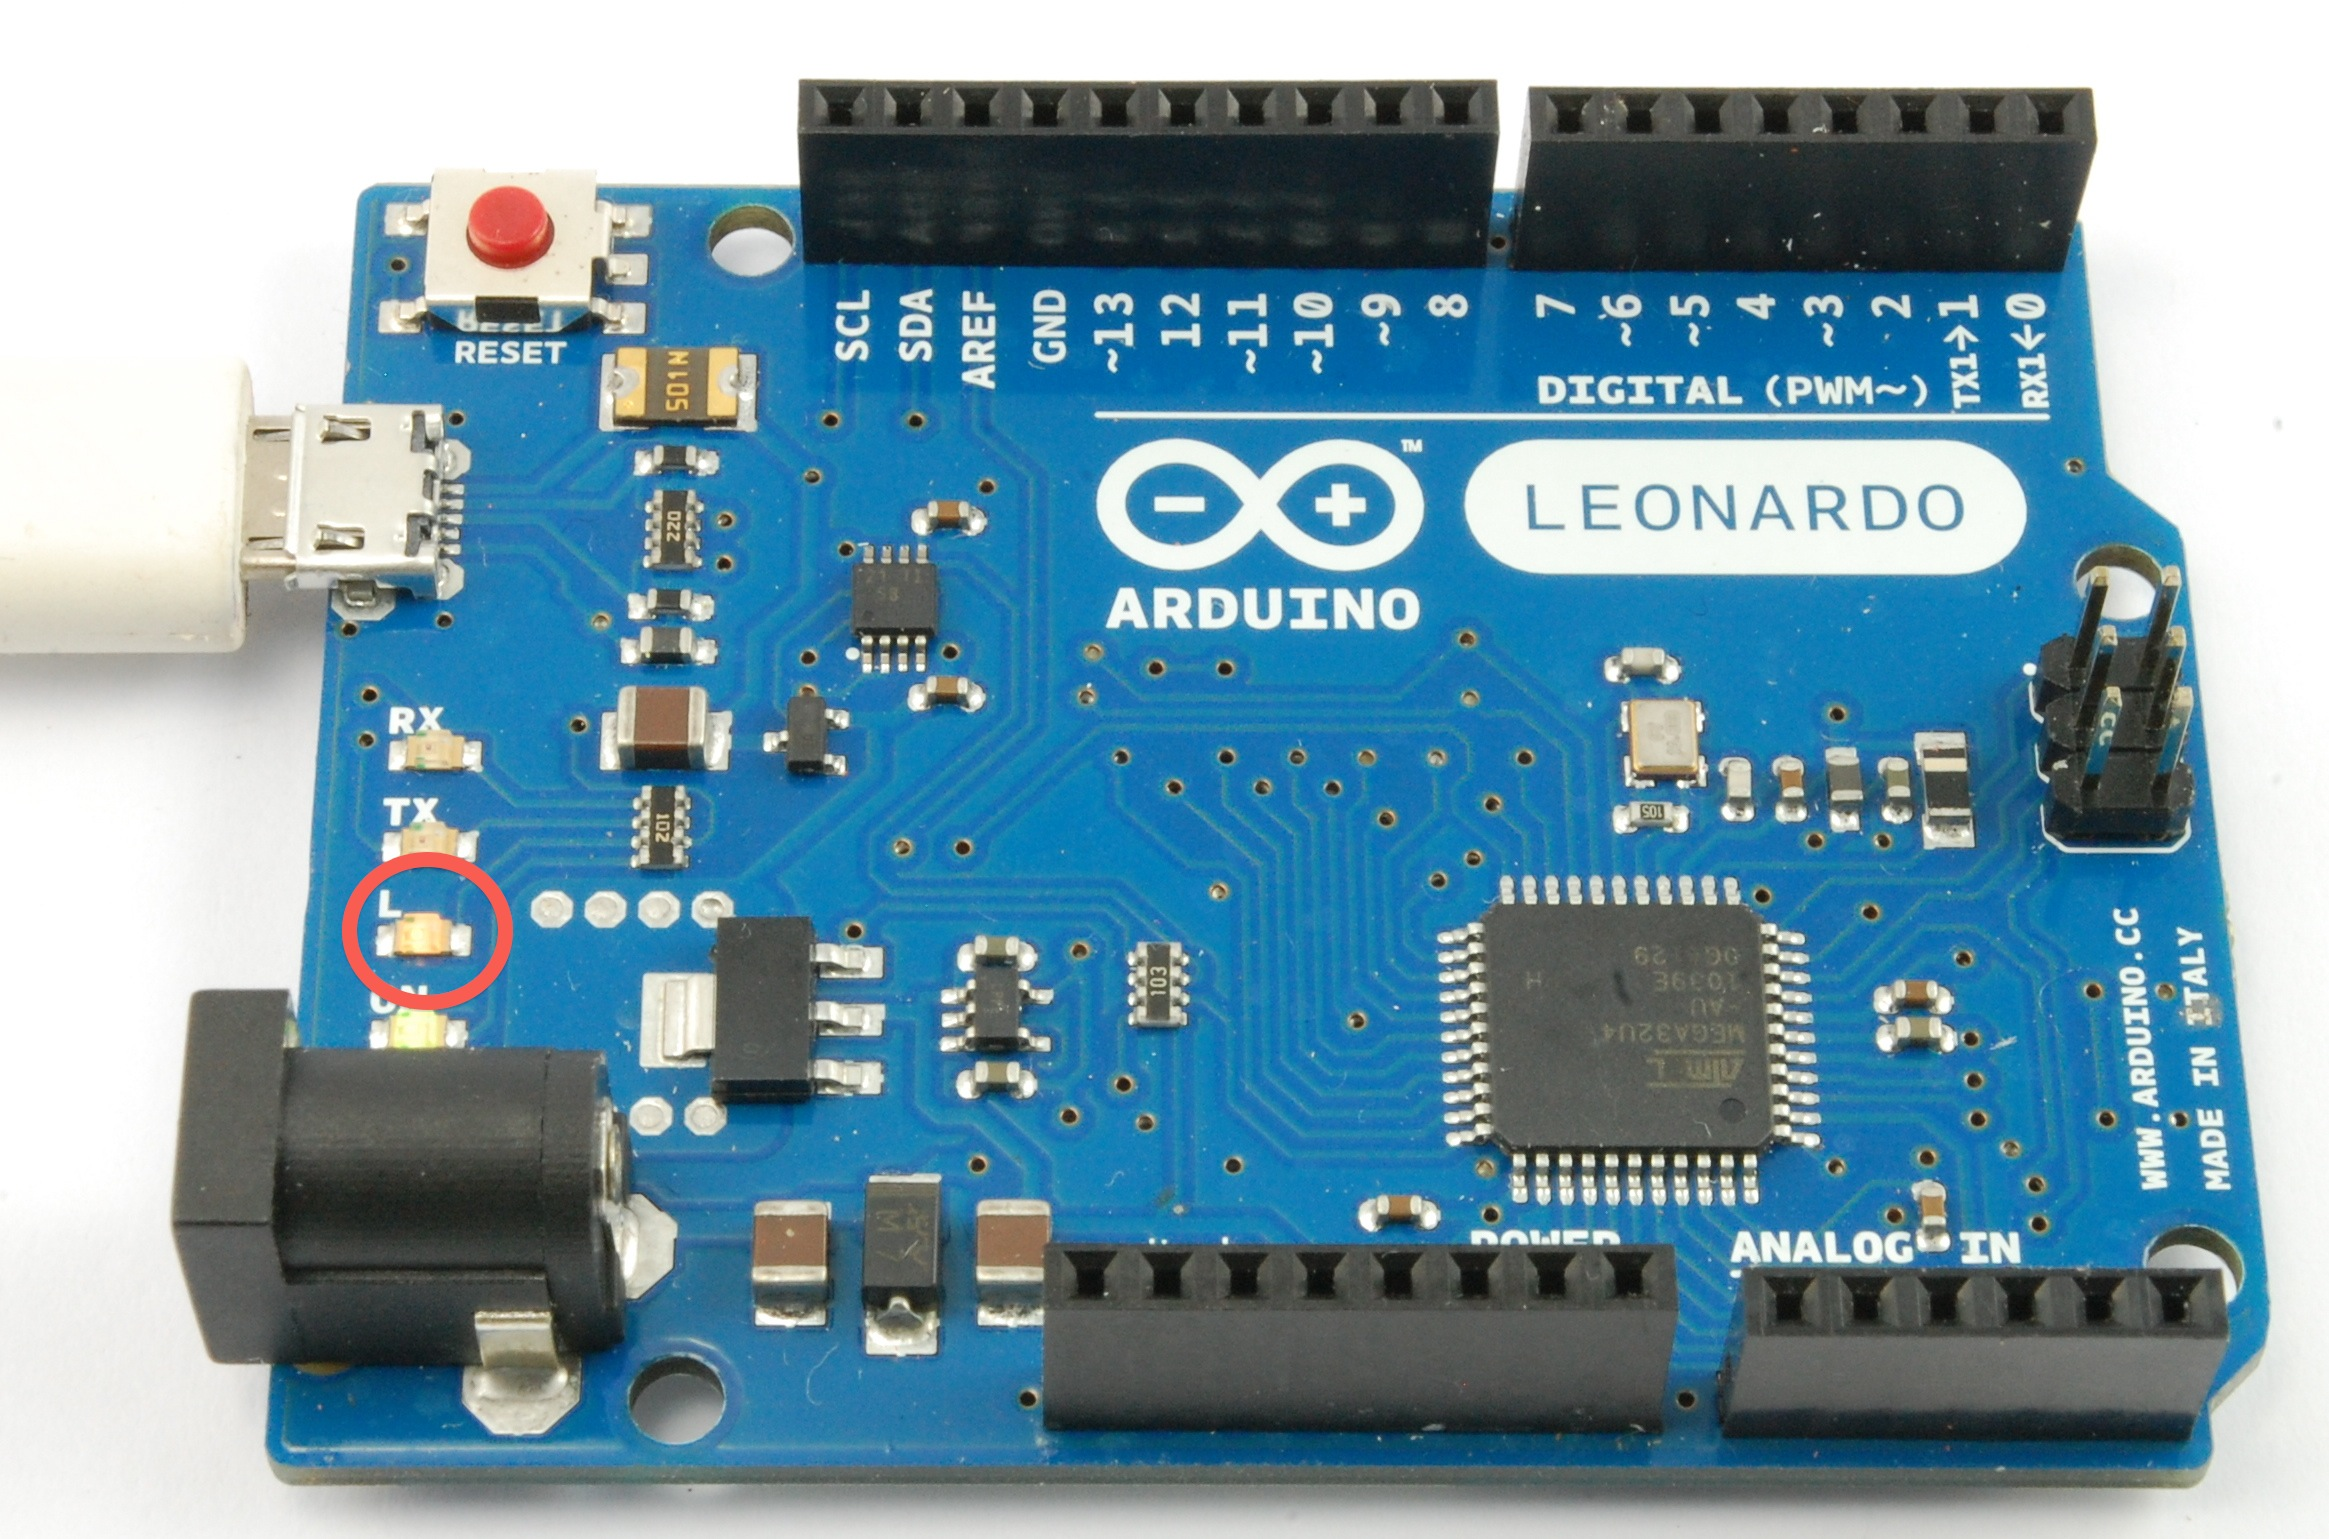 learn_arduino_leonardo_plugged_L_circled.jpg